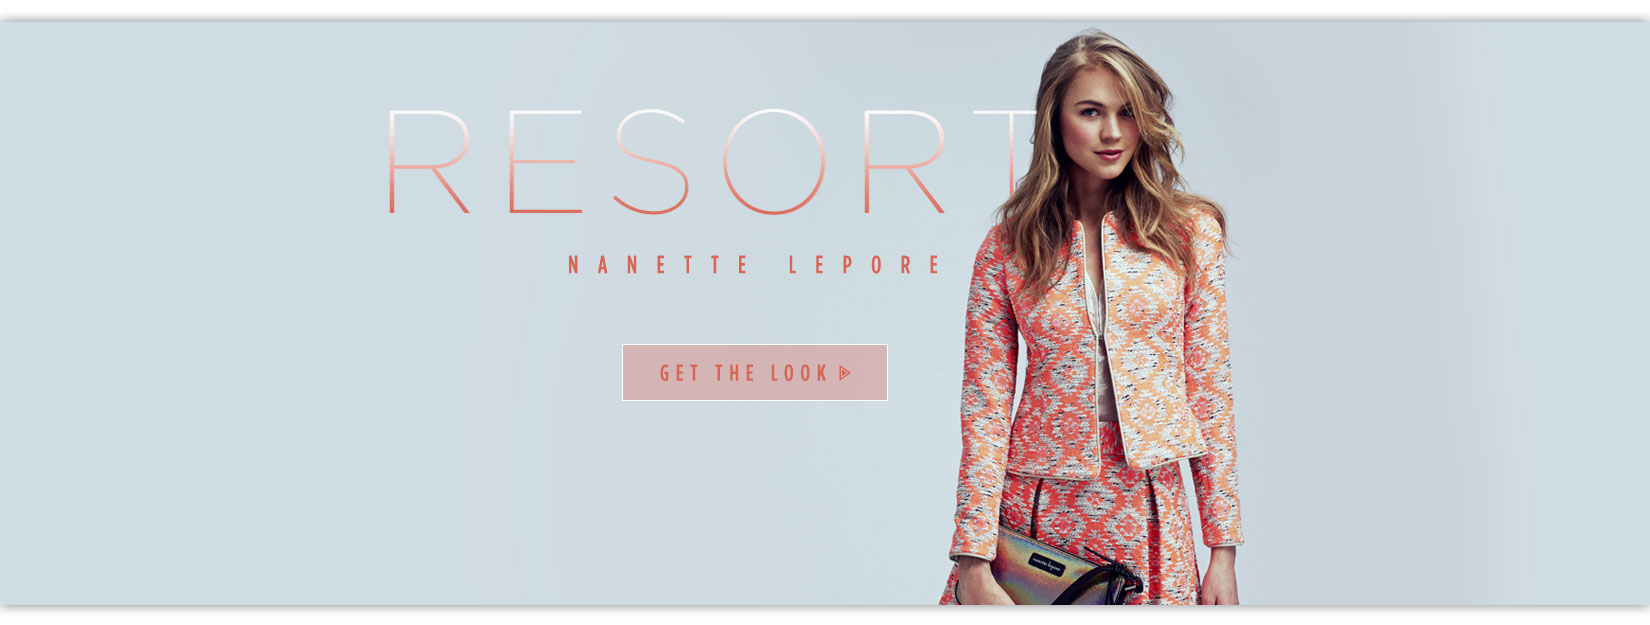 Nanette Lepore | Women's Apparel, Designer Shoes, Handbags, Swim